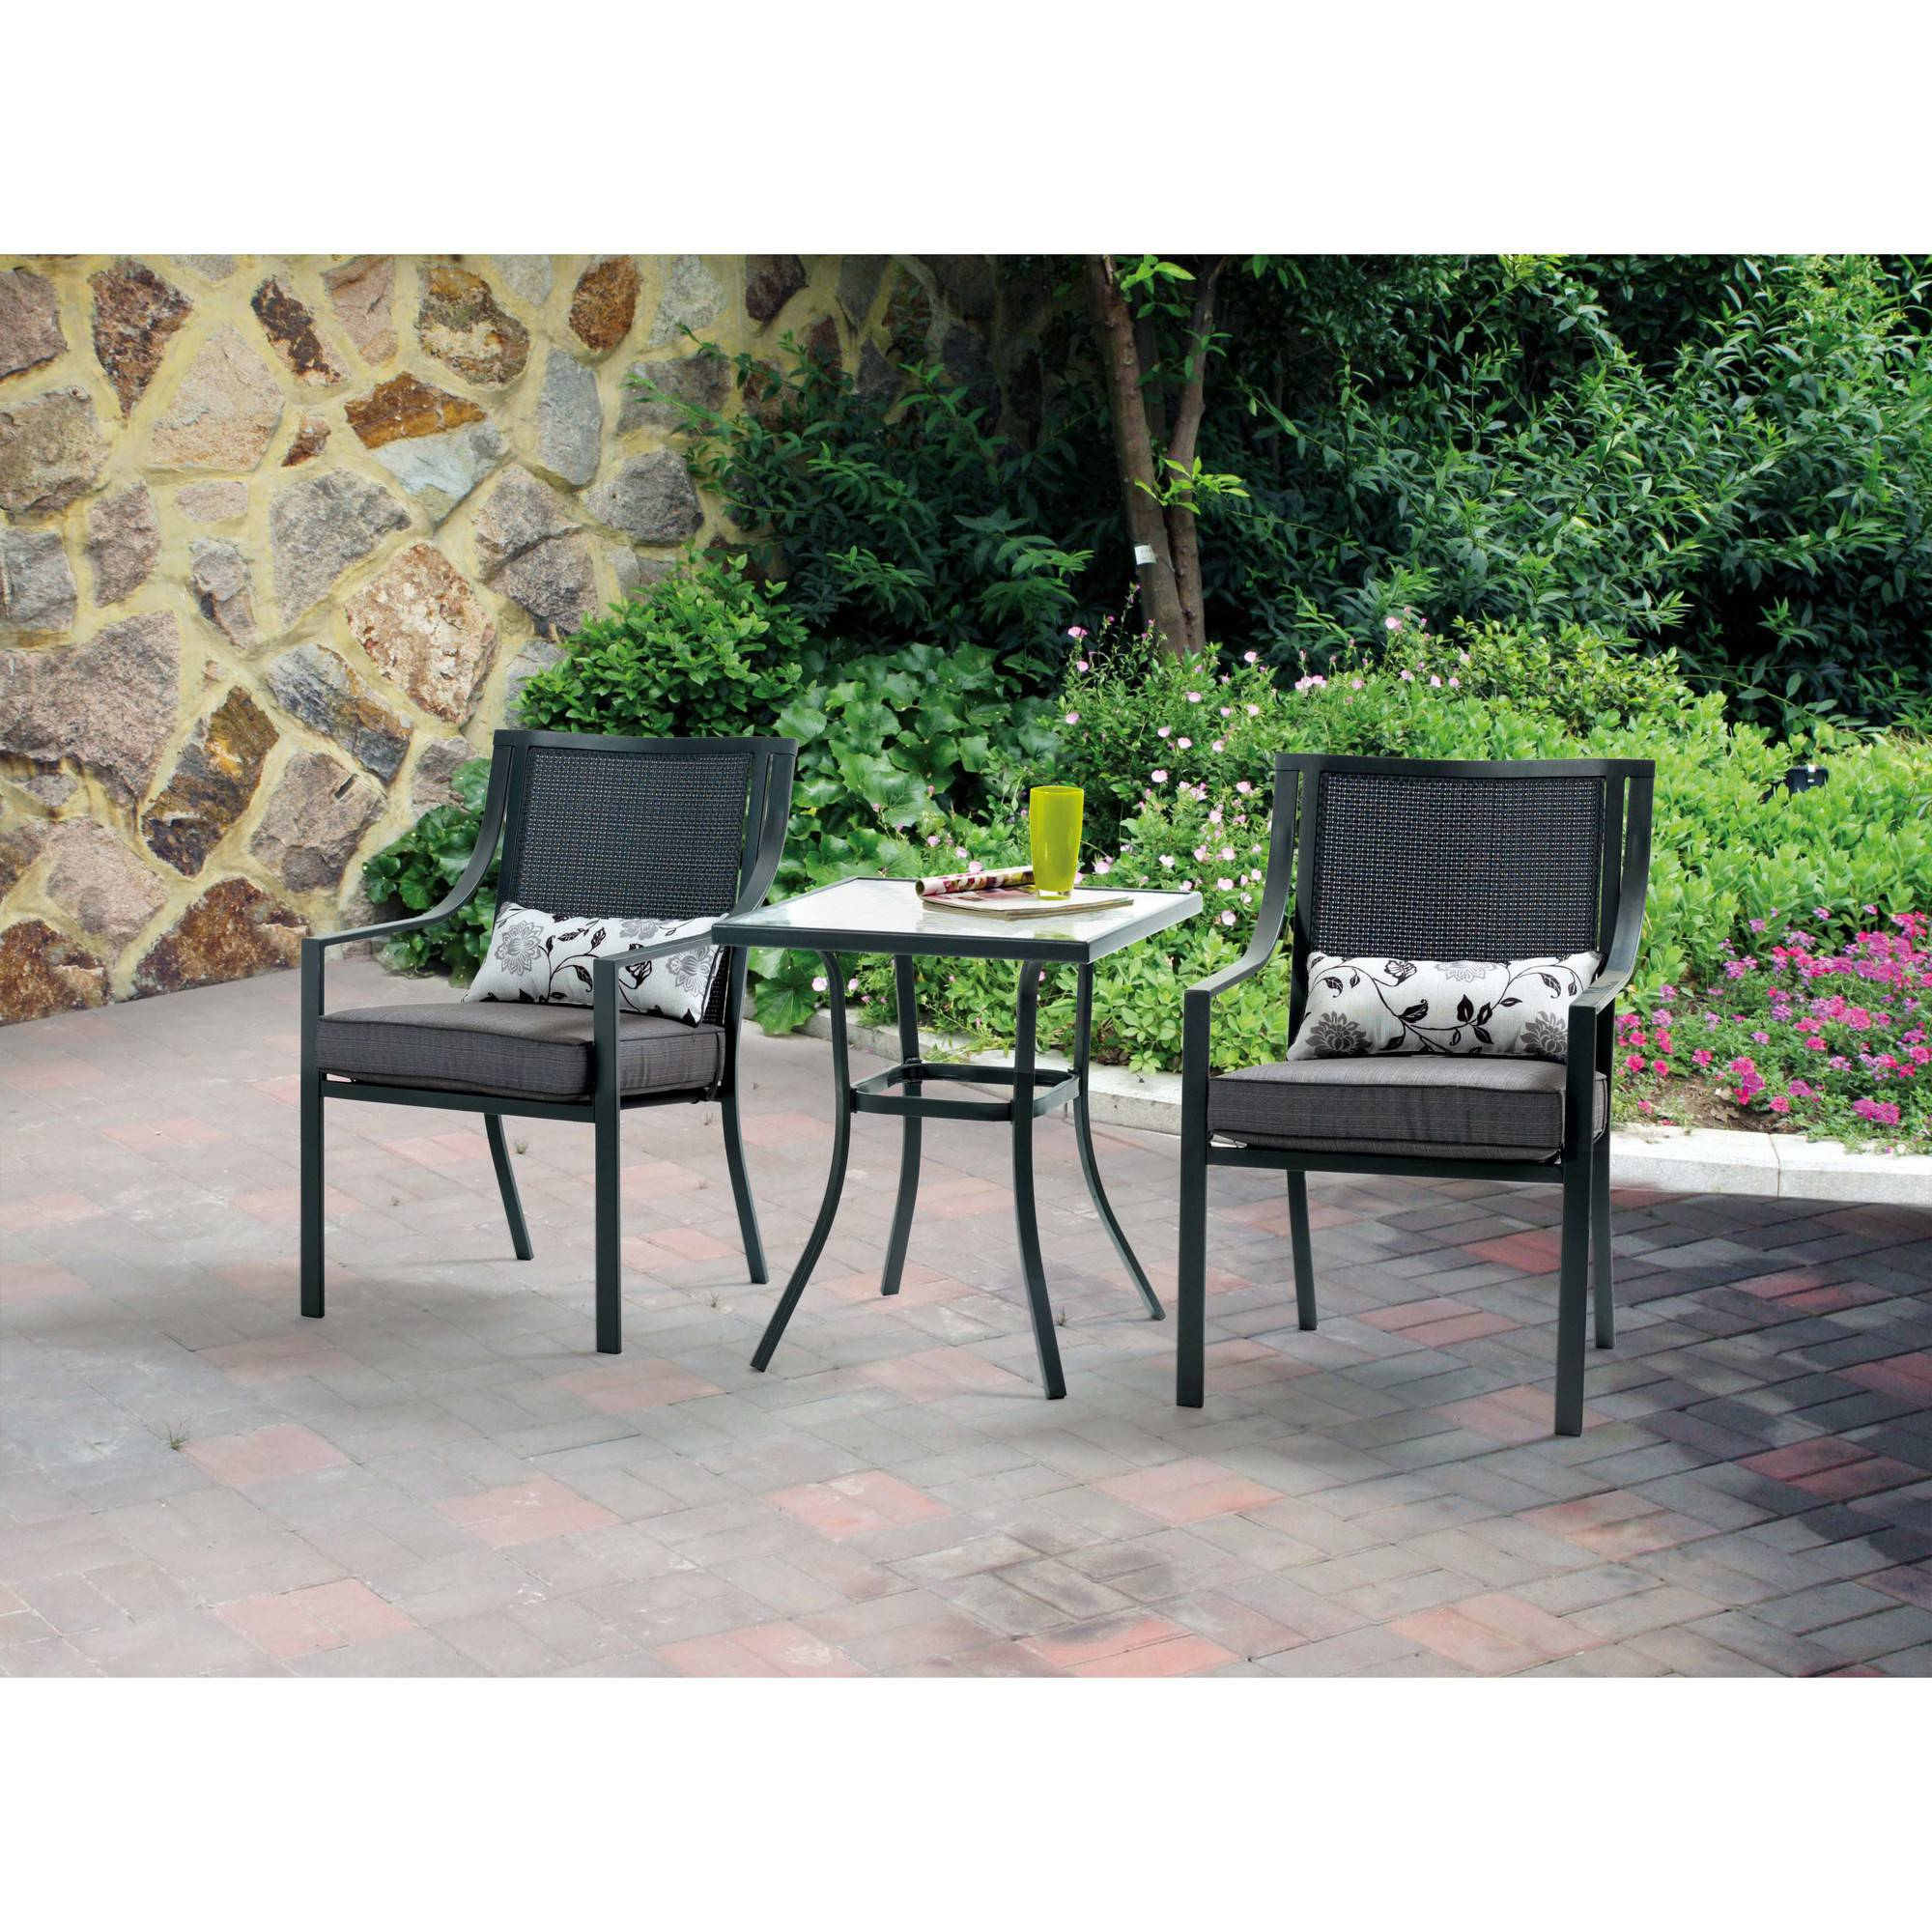 3 Piece Outdoor Weather Proof Bistro Patio Furniture Set Powder Coated Steel